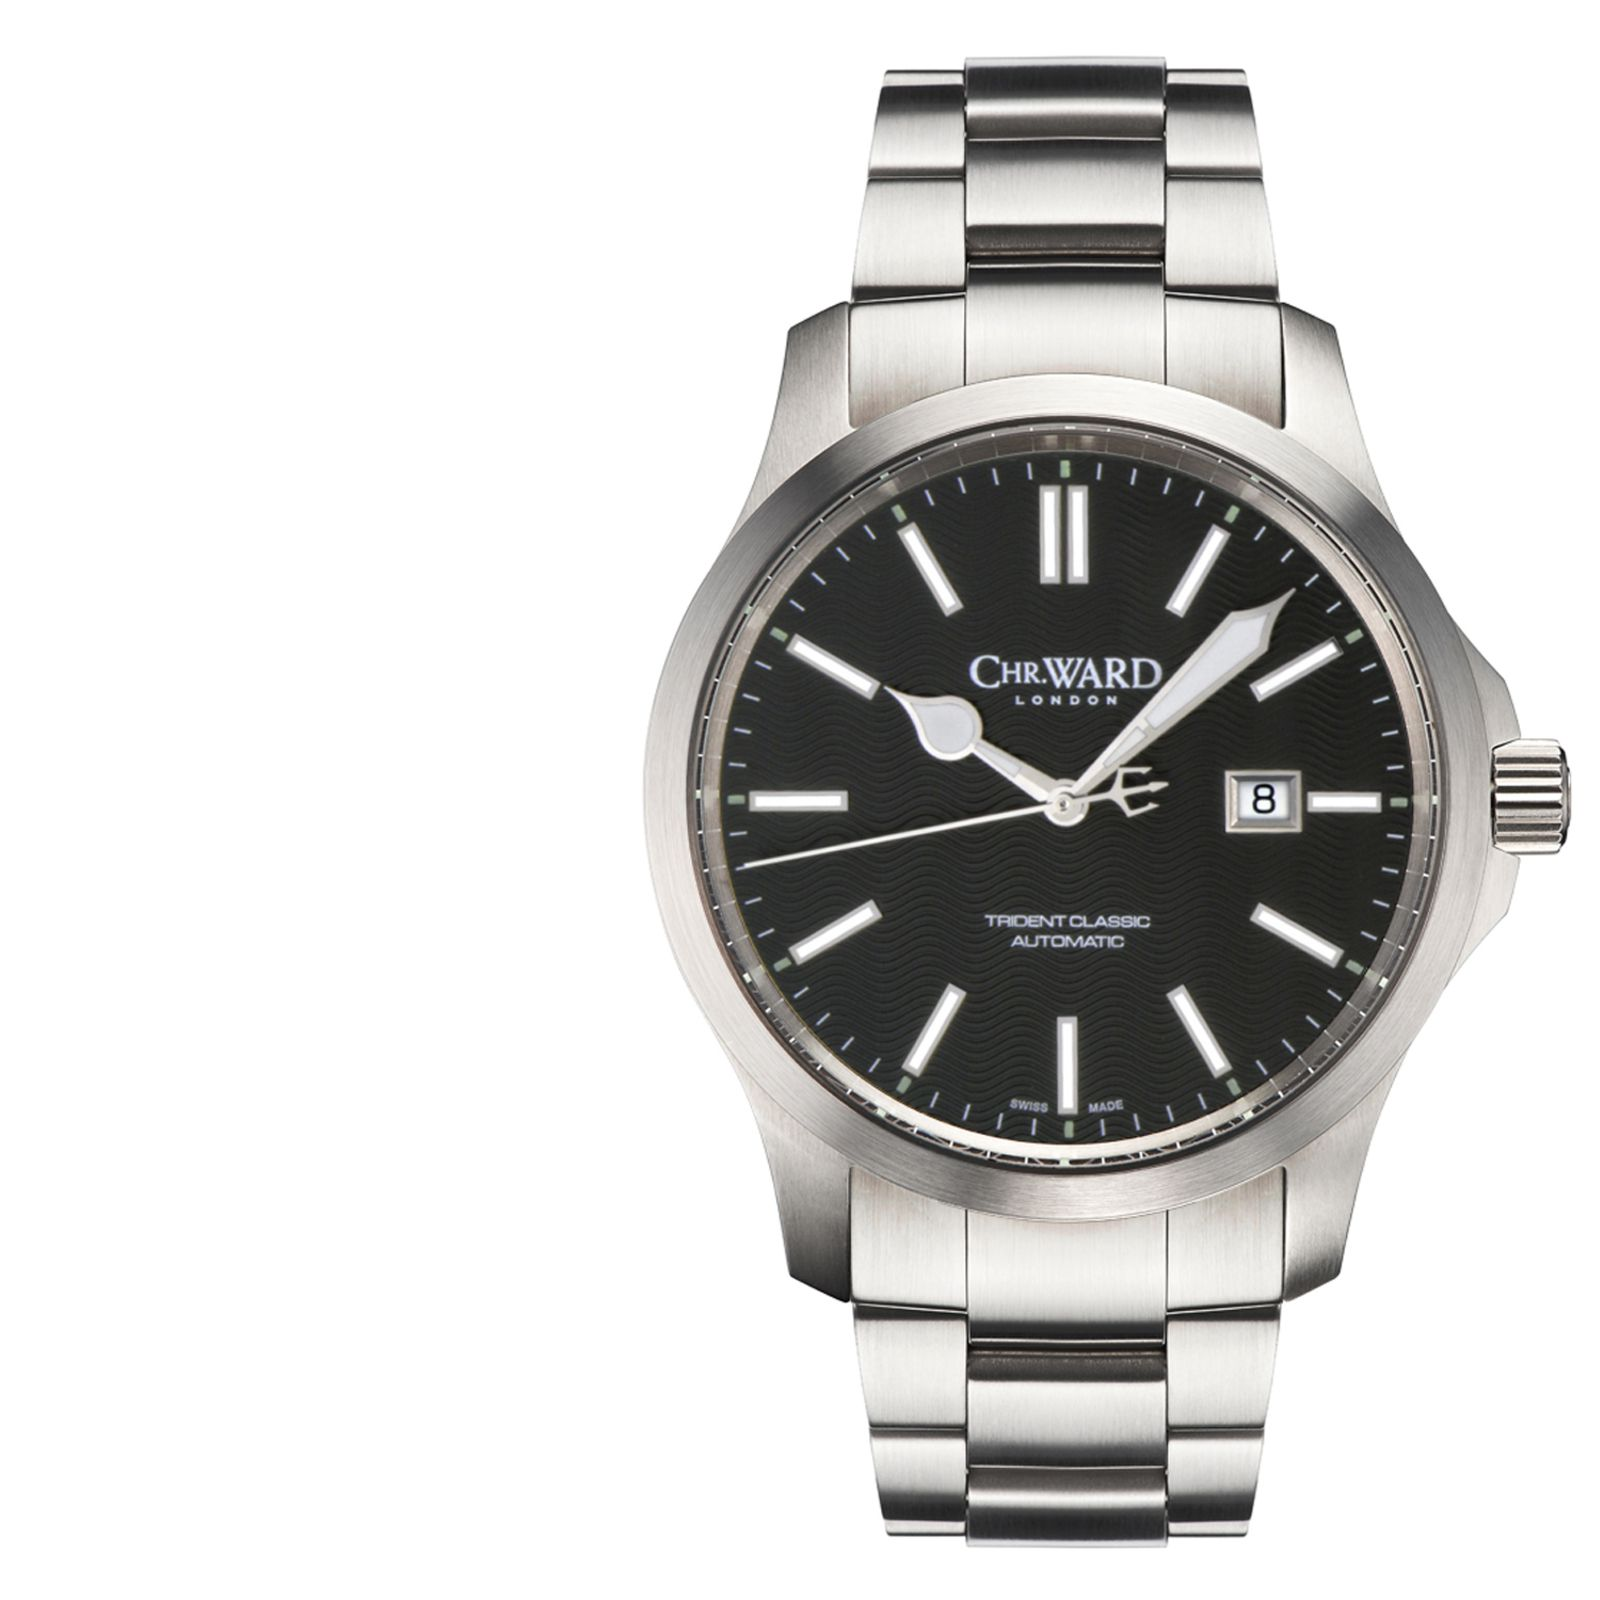 5 Of The Best Minimal Watches Watches, Michael kors